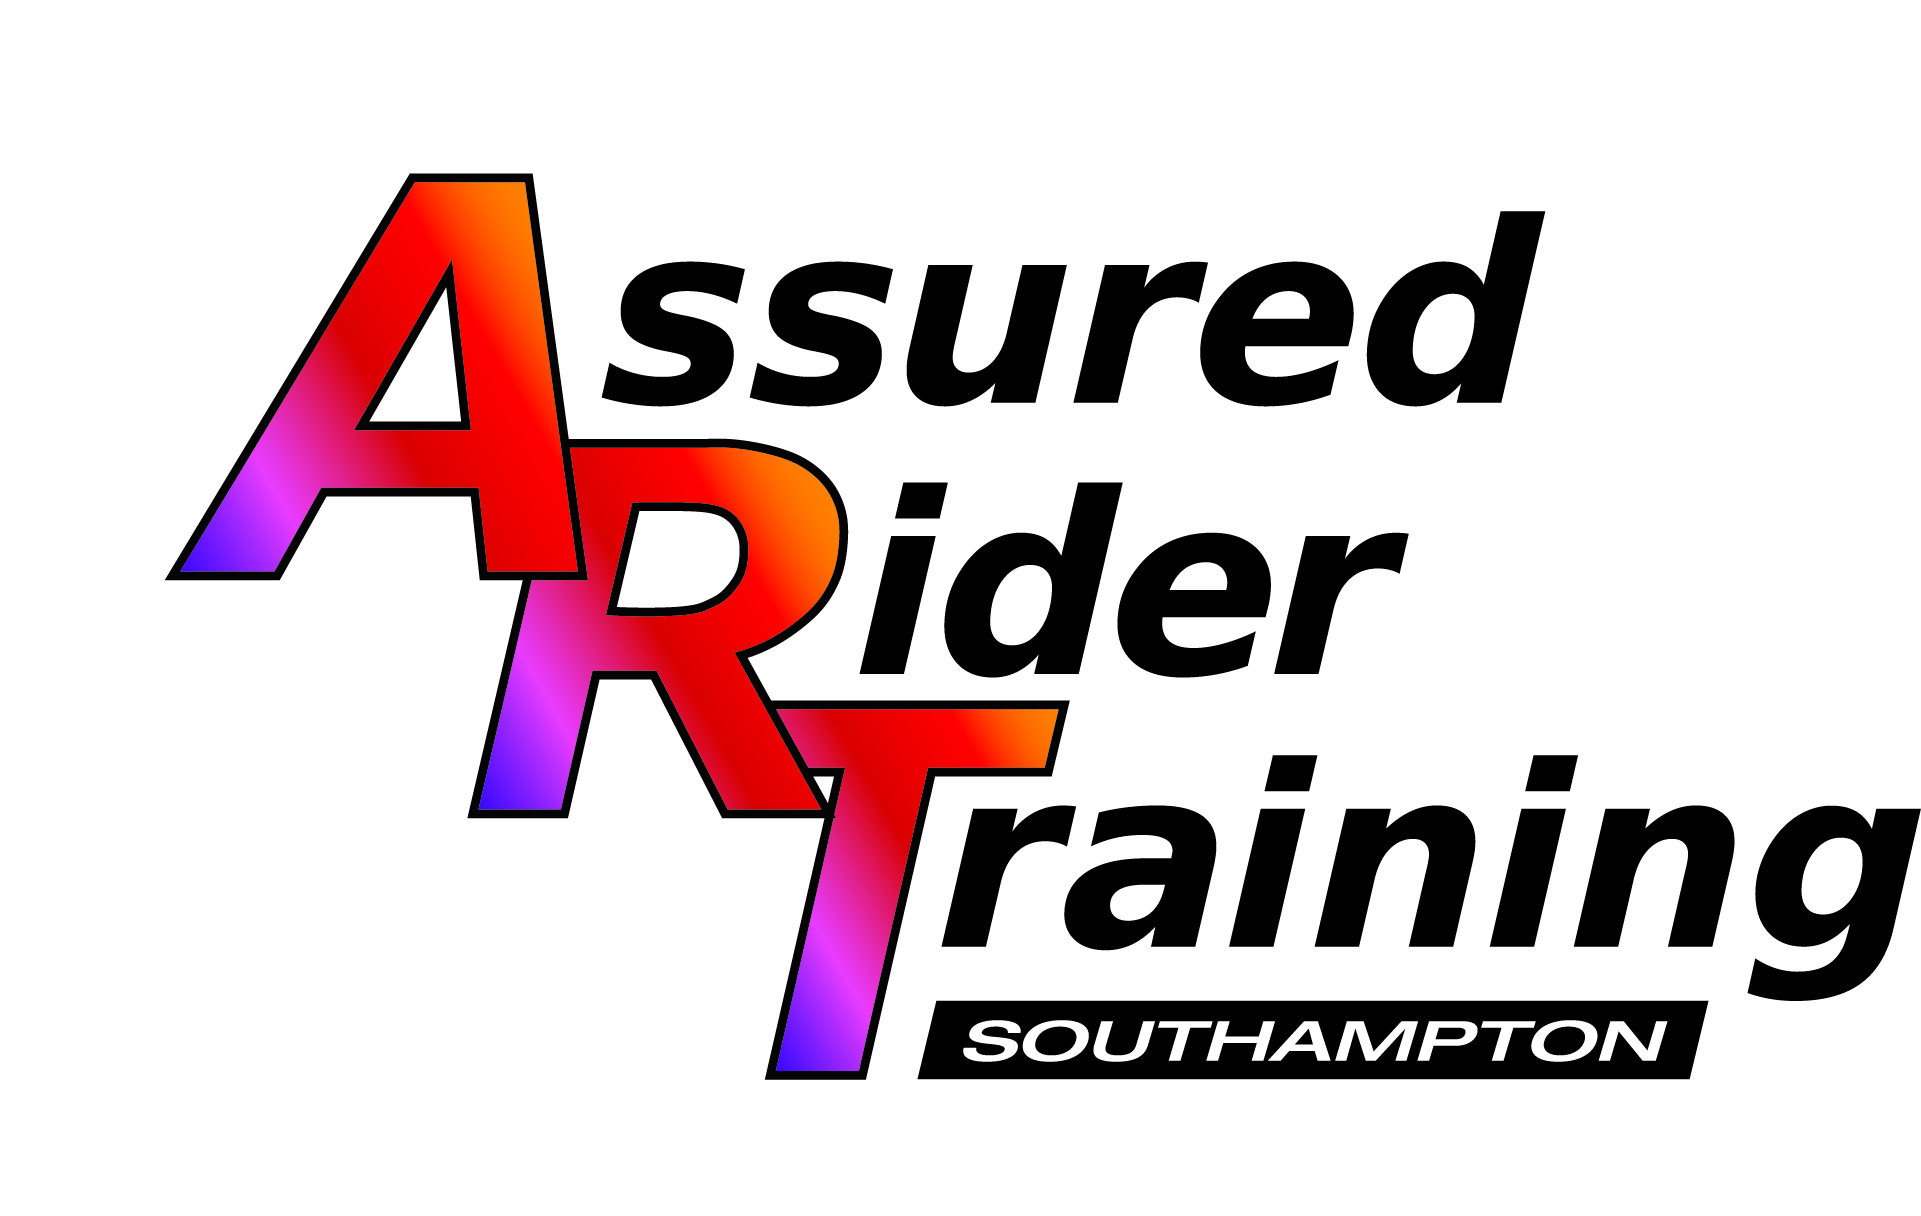 Assured Rider Training Southampton in Southampton